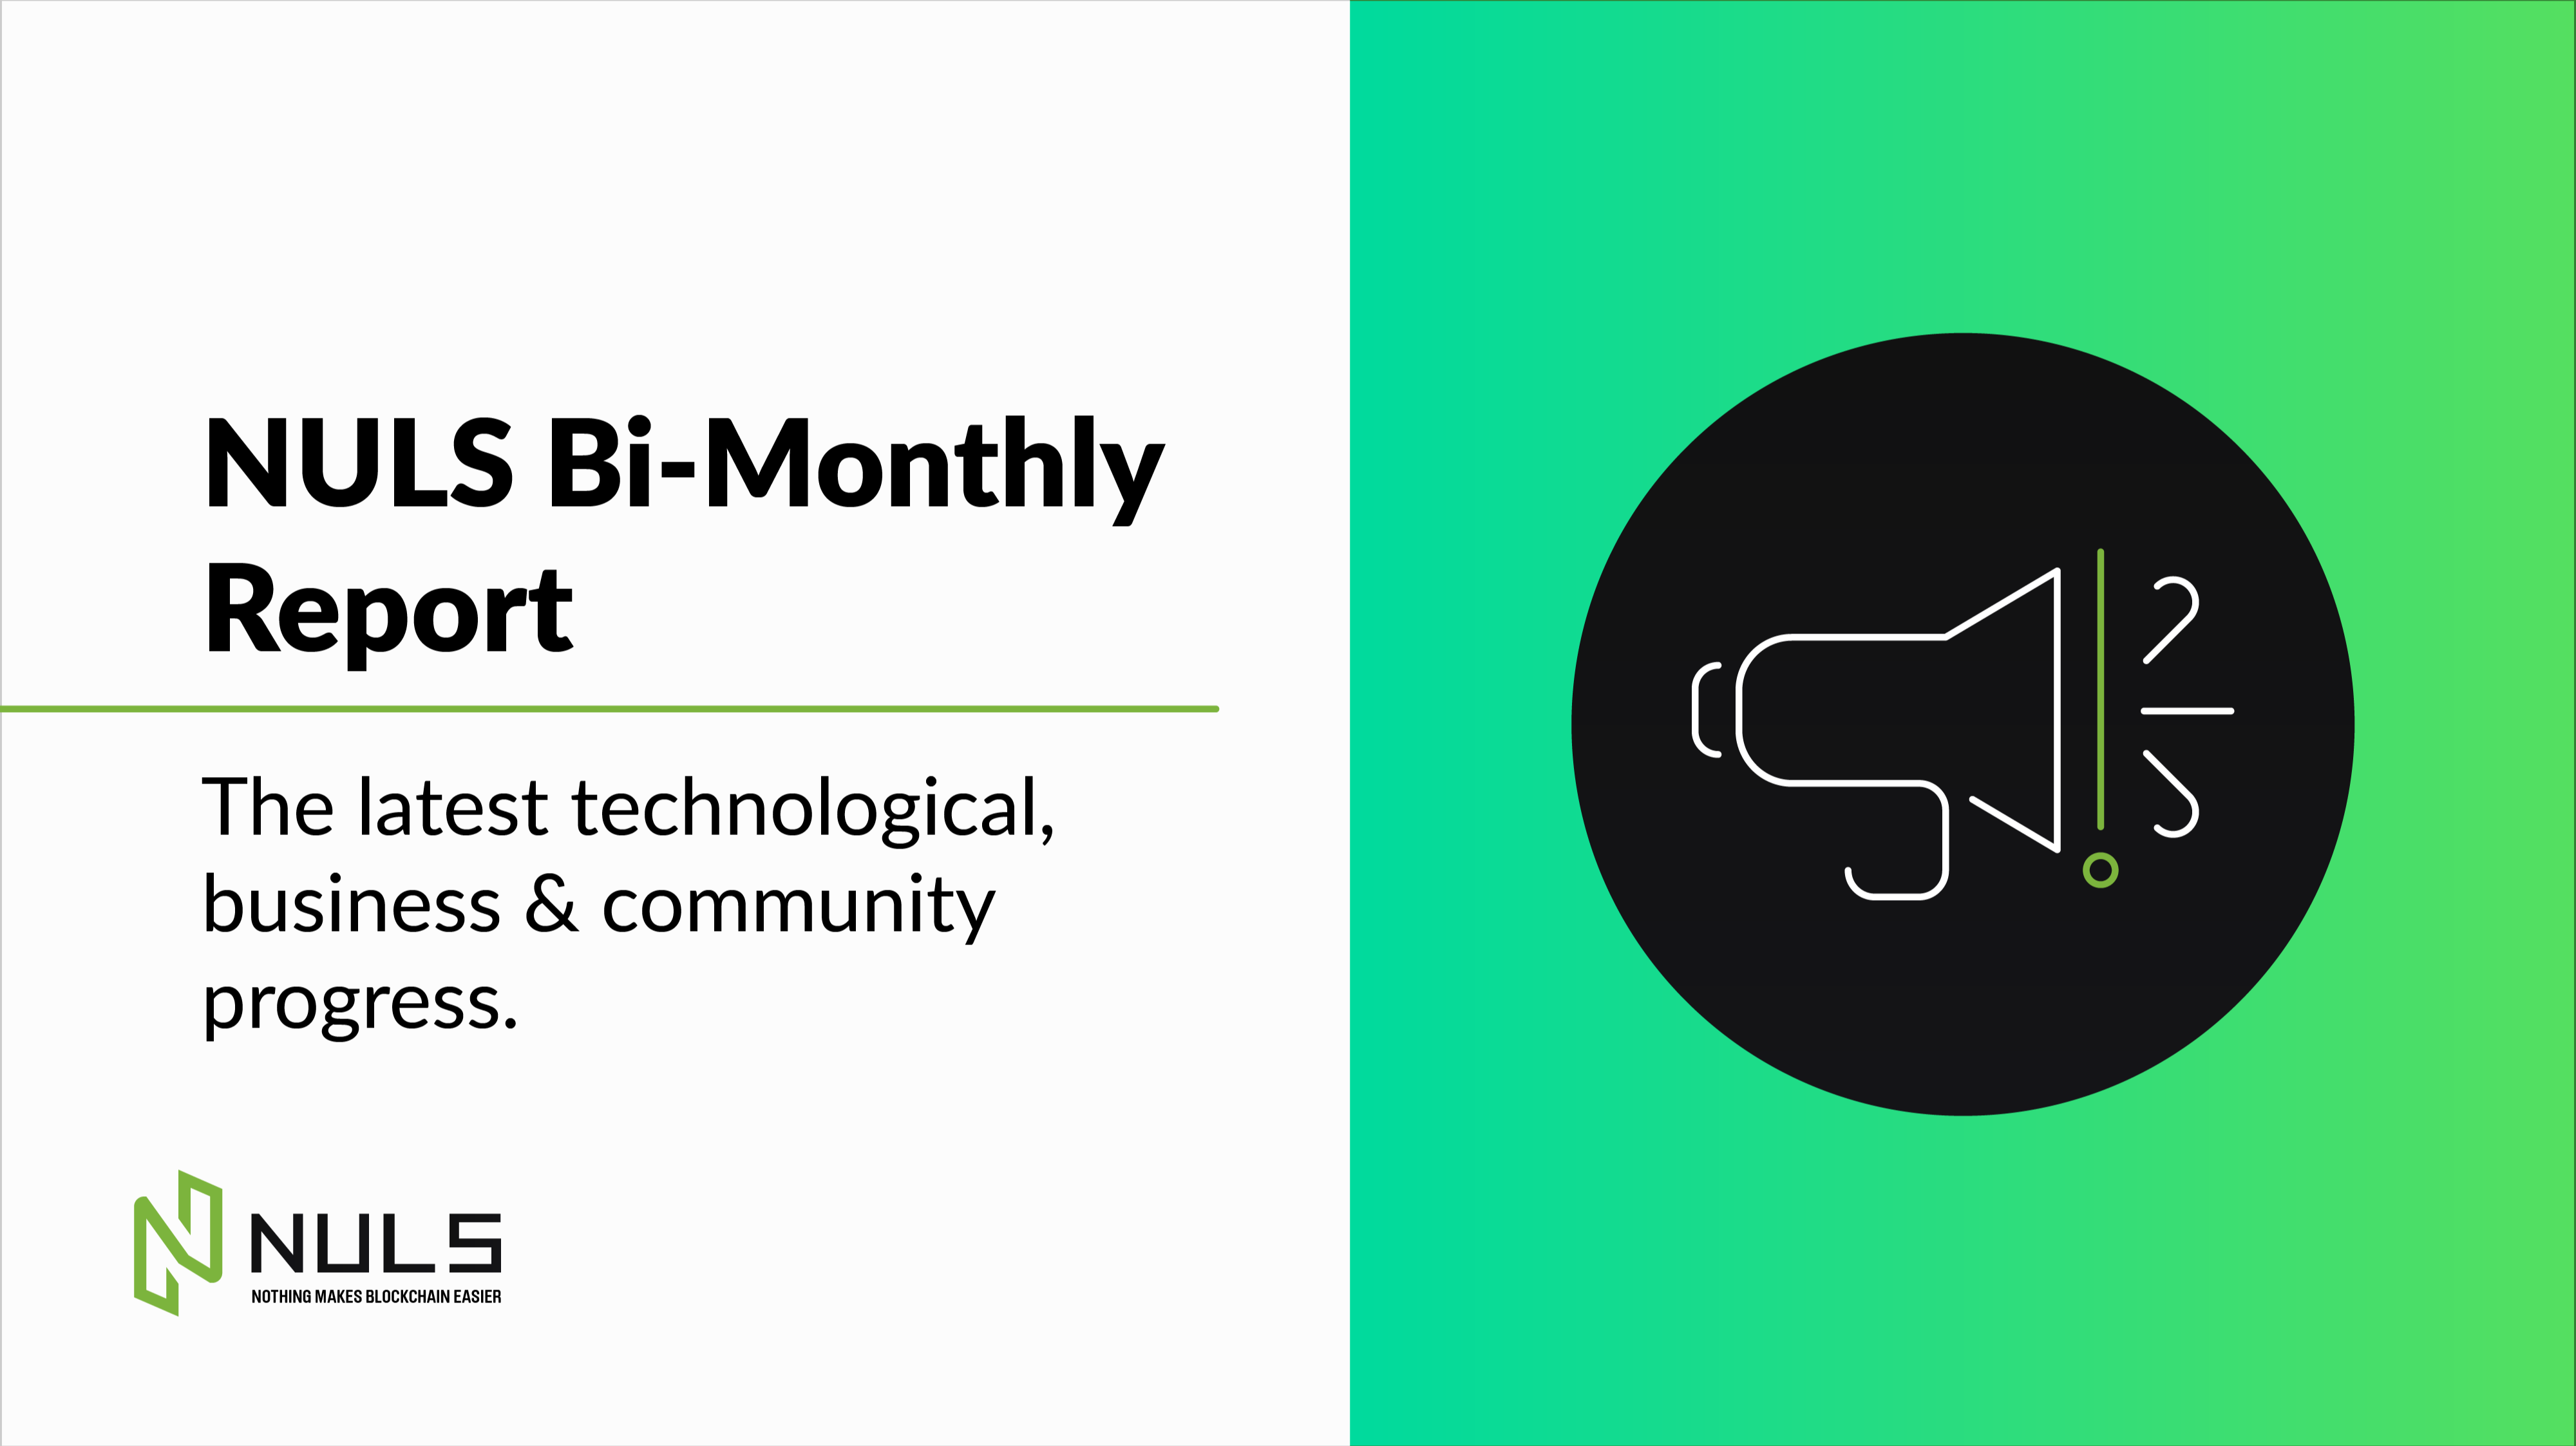 NULS Bi-Monthly Report — First Half of January 2021 Briefing